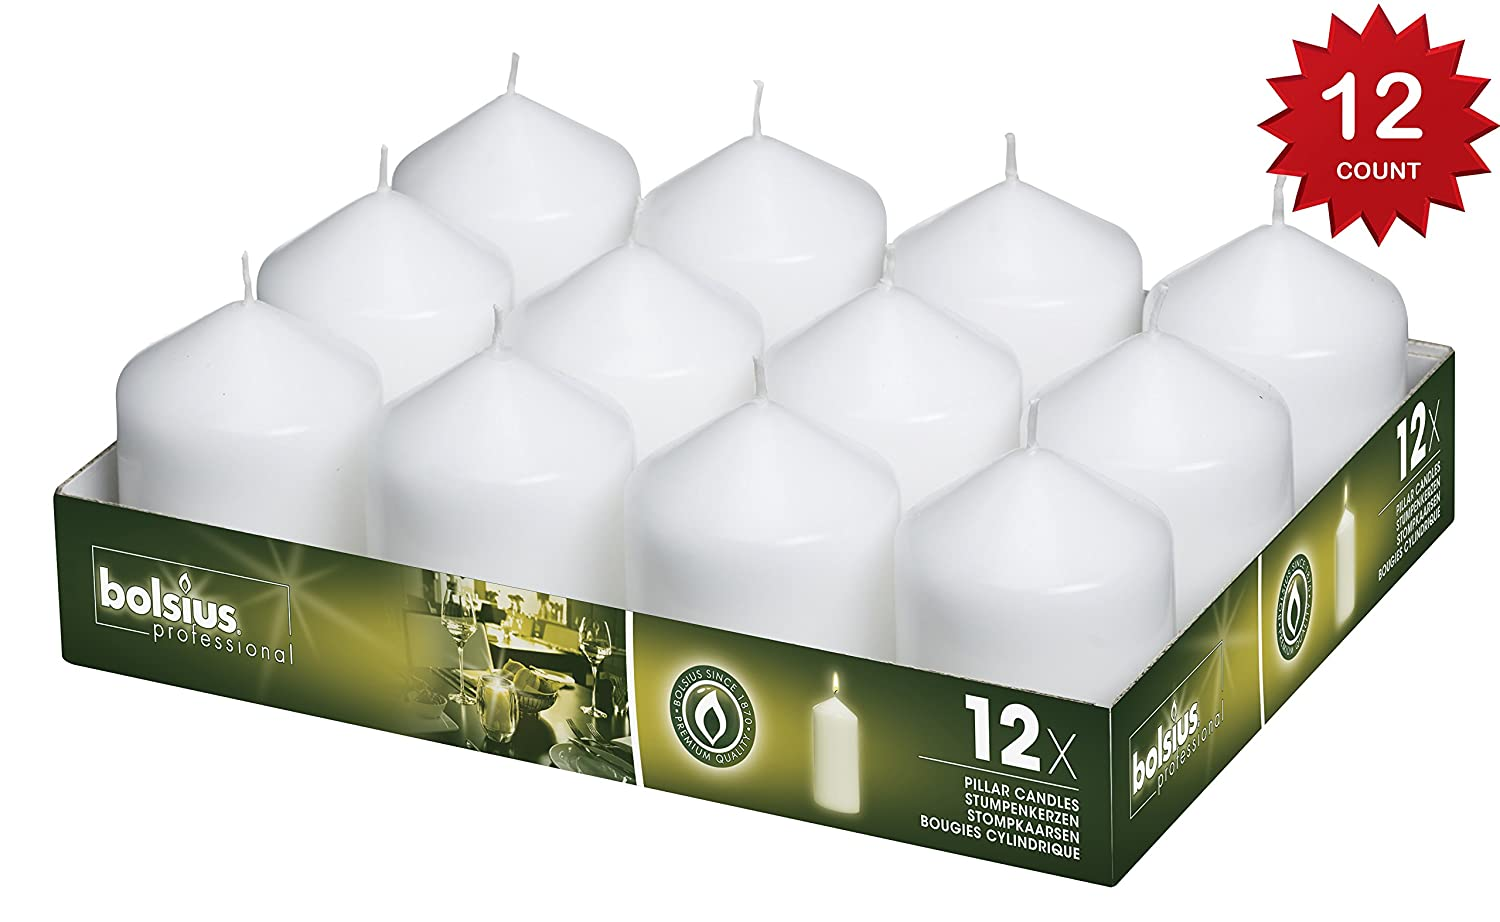 Bolsius Tray of 12 White Pillar Candles 78 x 58 mm (aprox 3 x 2.3 inch)